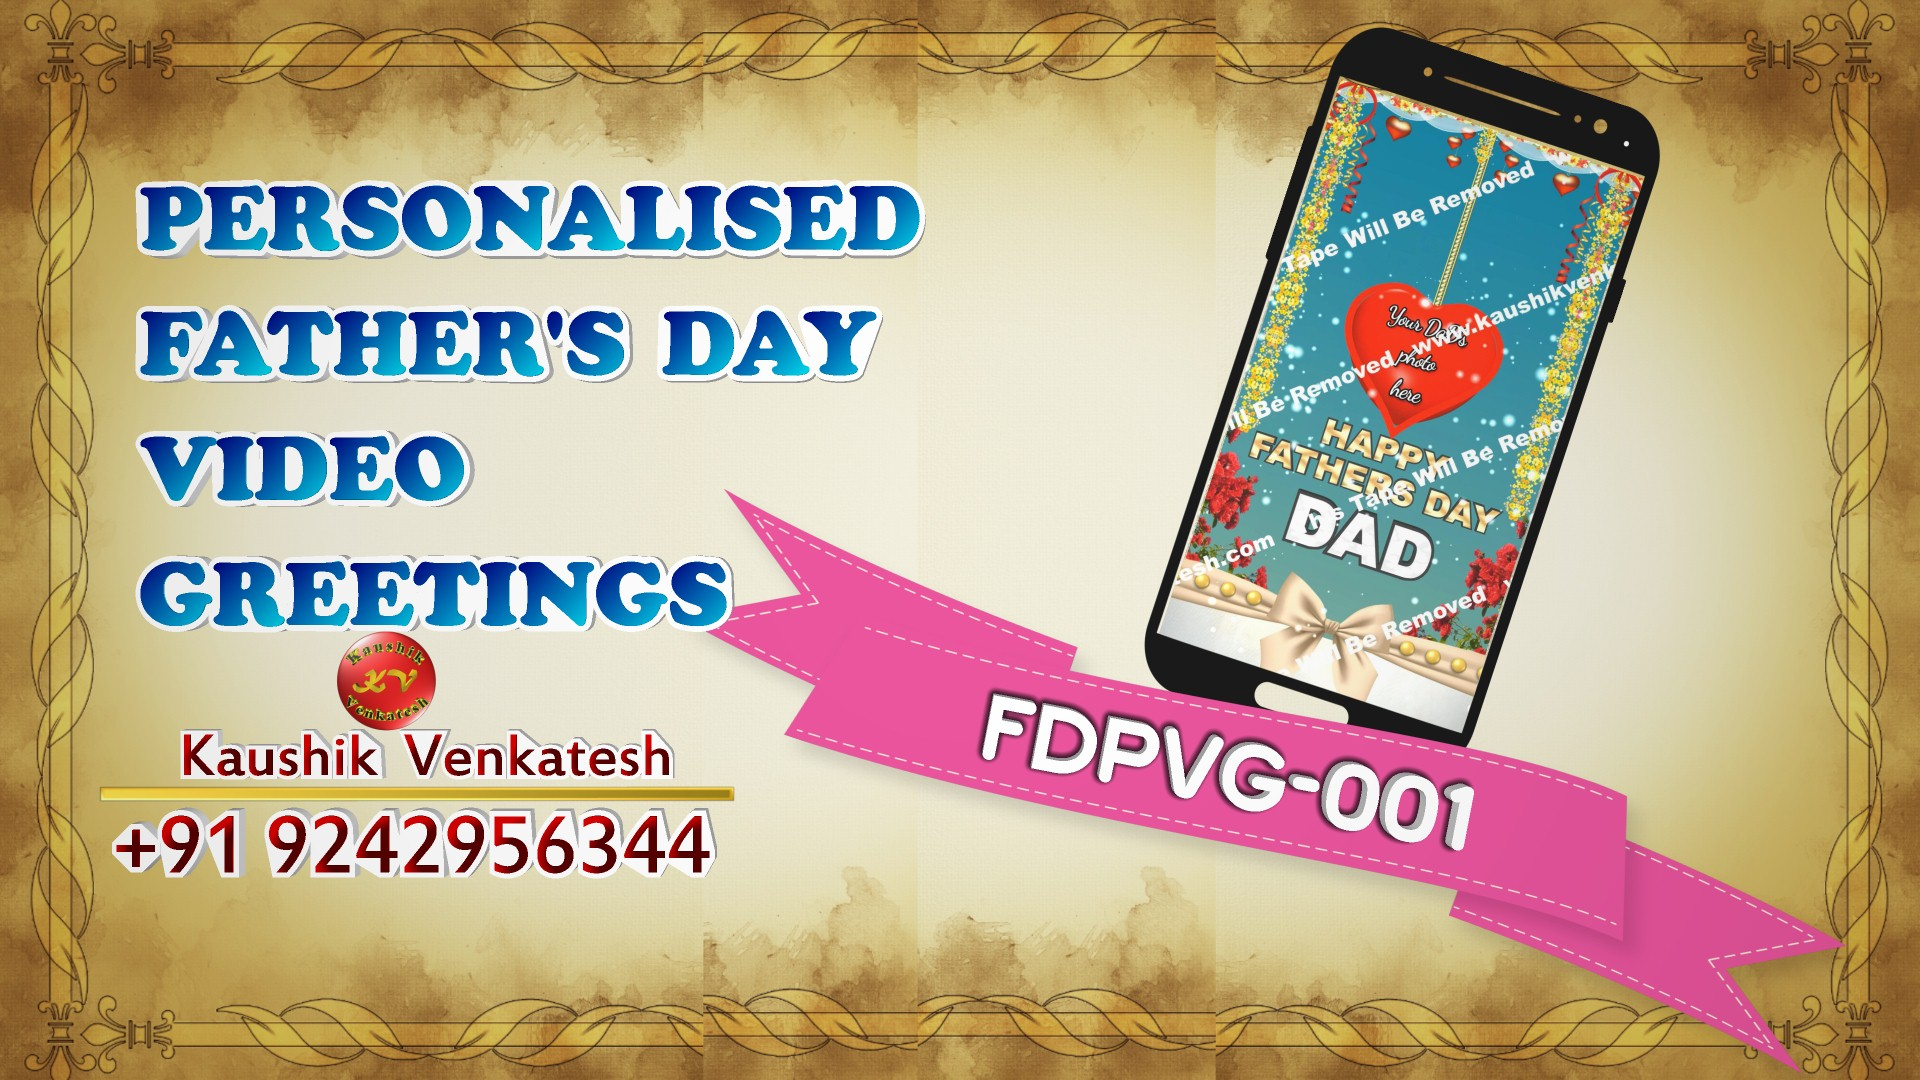 Product Image of Personalized Happy Fathers Day Wishes Video